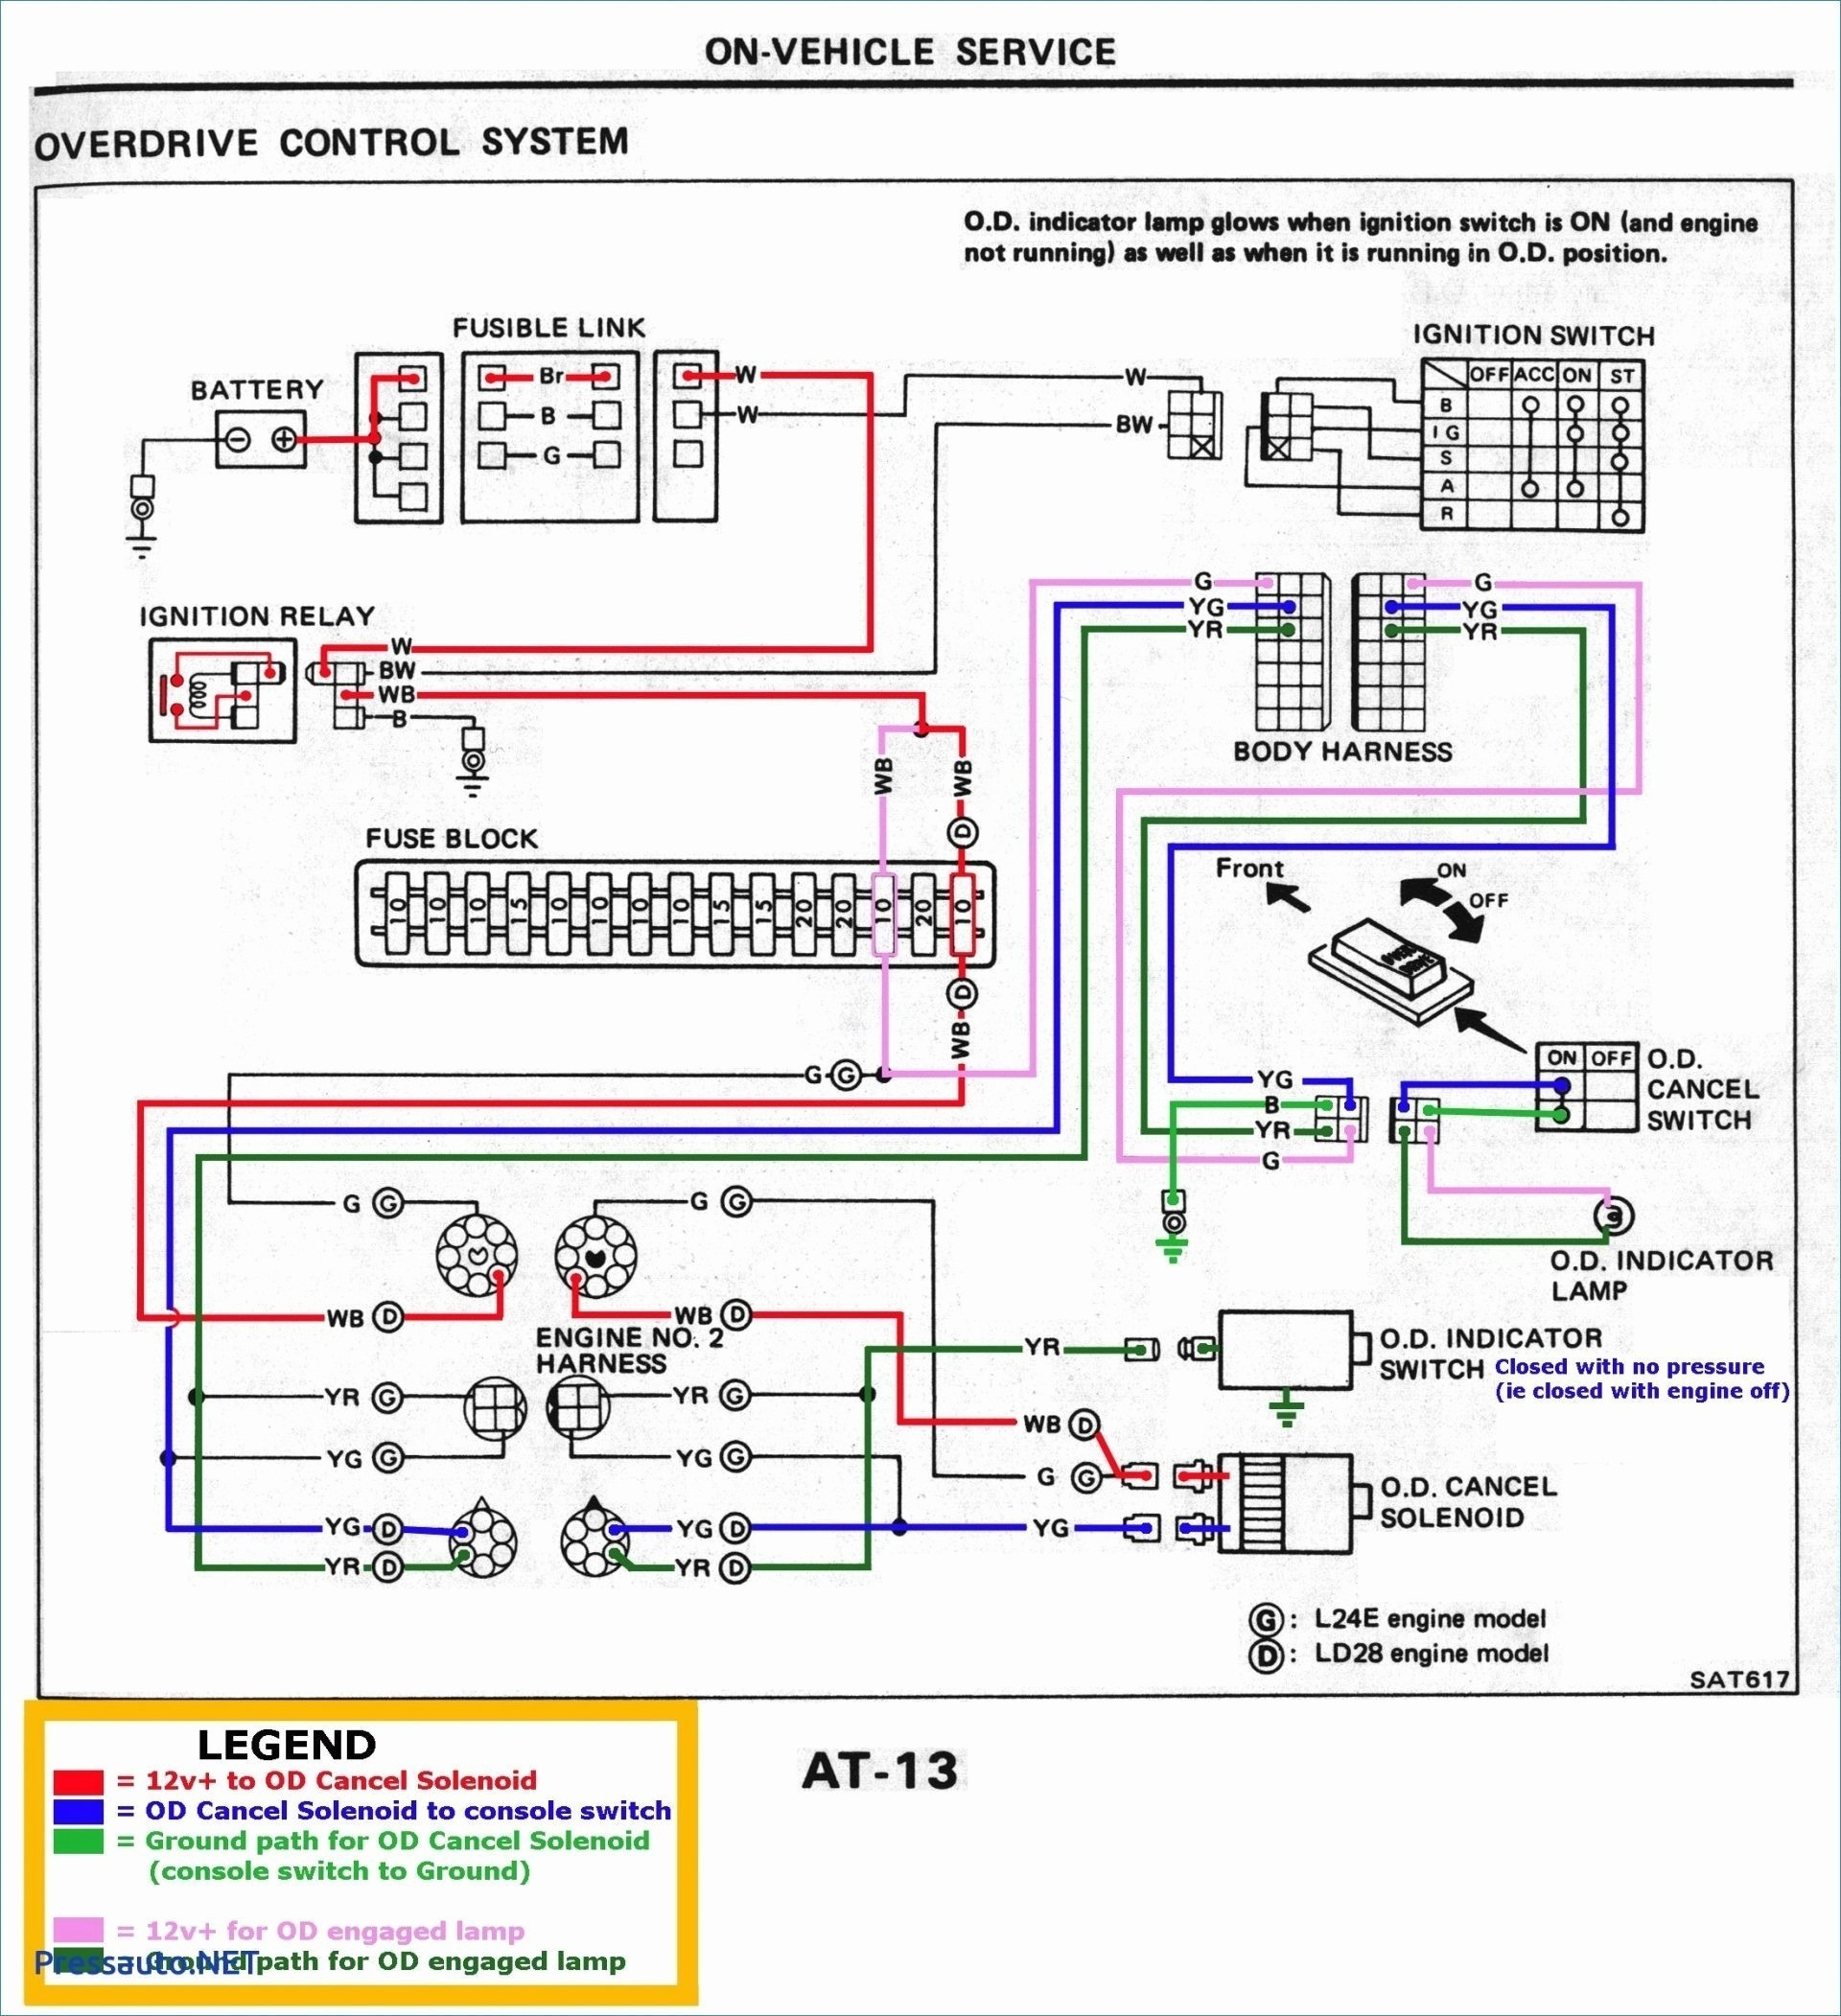 Amp Research Power Step Wiring Diagram F099f Range Rover Denso Radio Wiring Schematics 2007 Of Amp Research Power Step Wiring Diagram